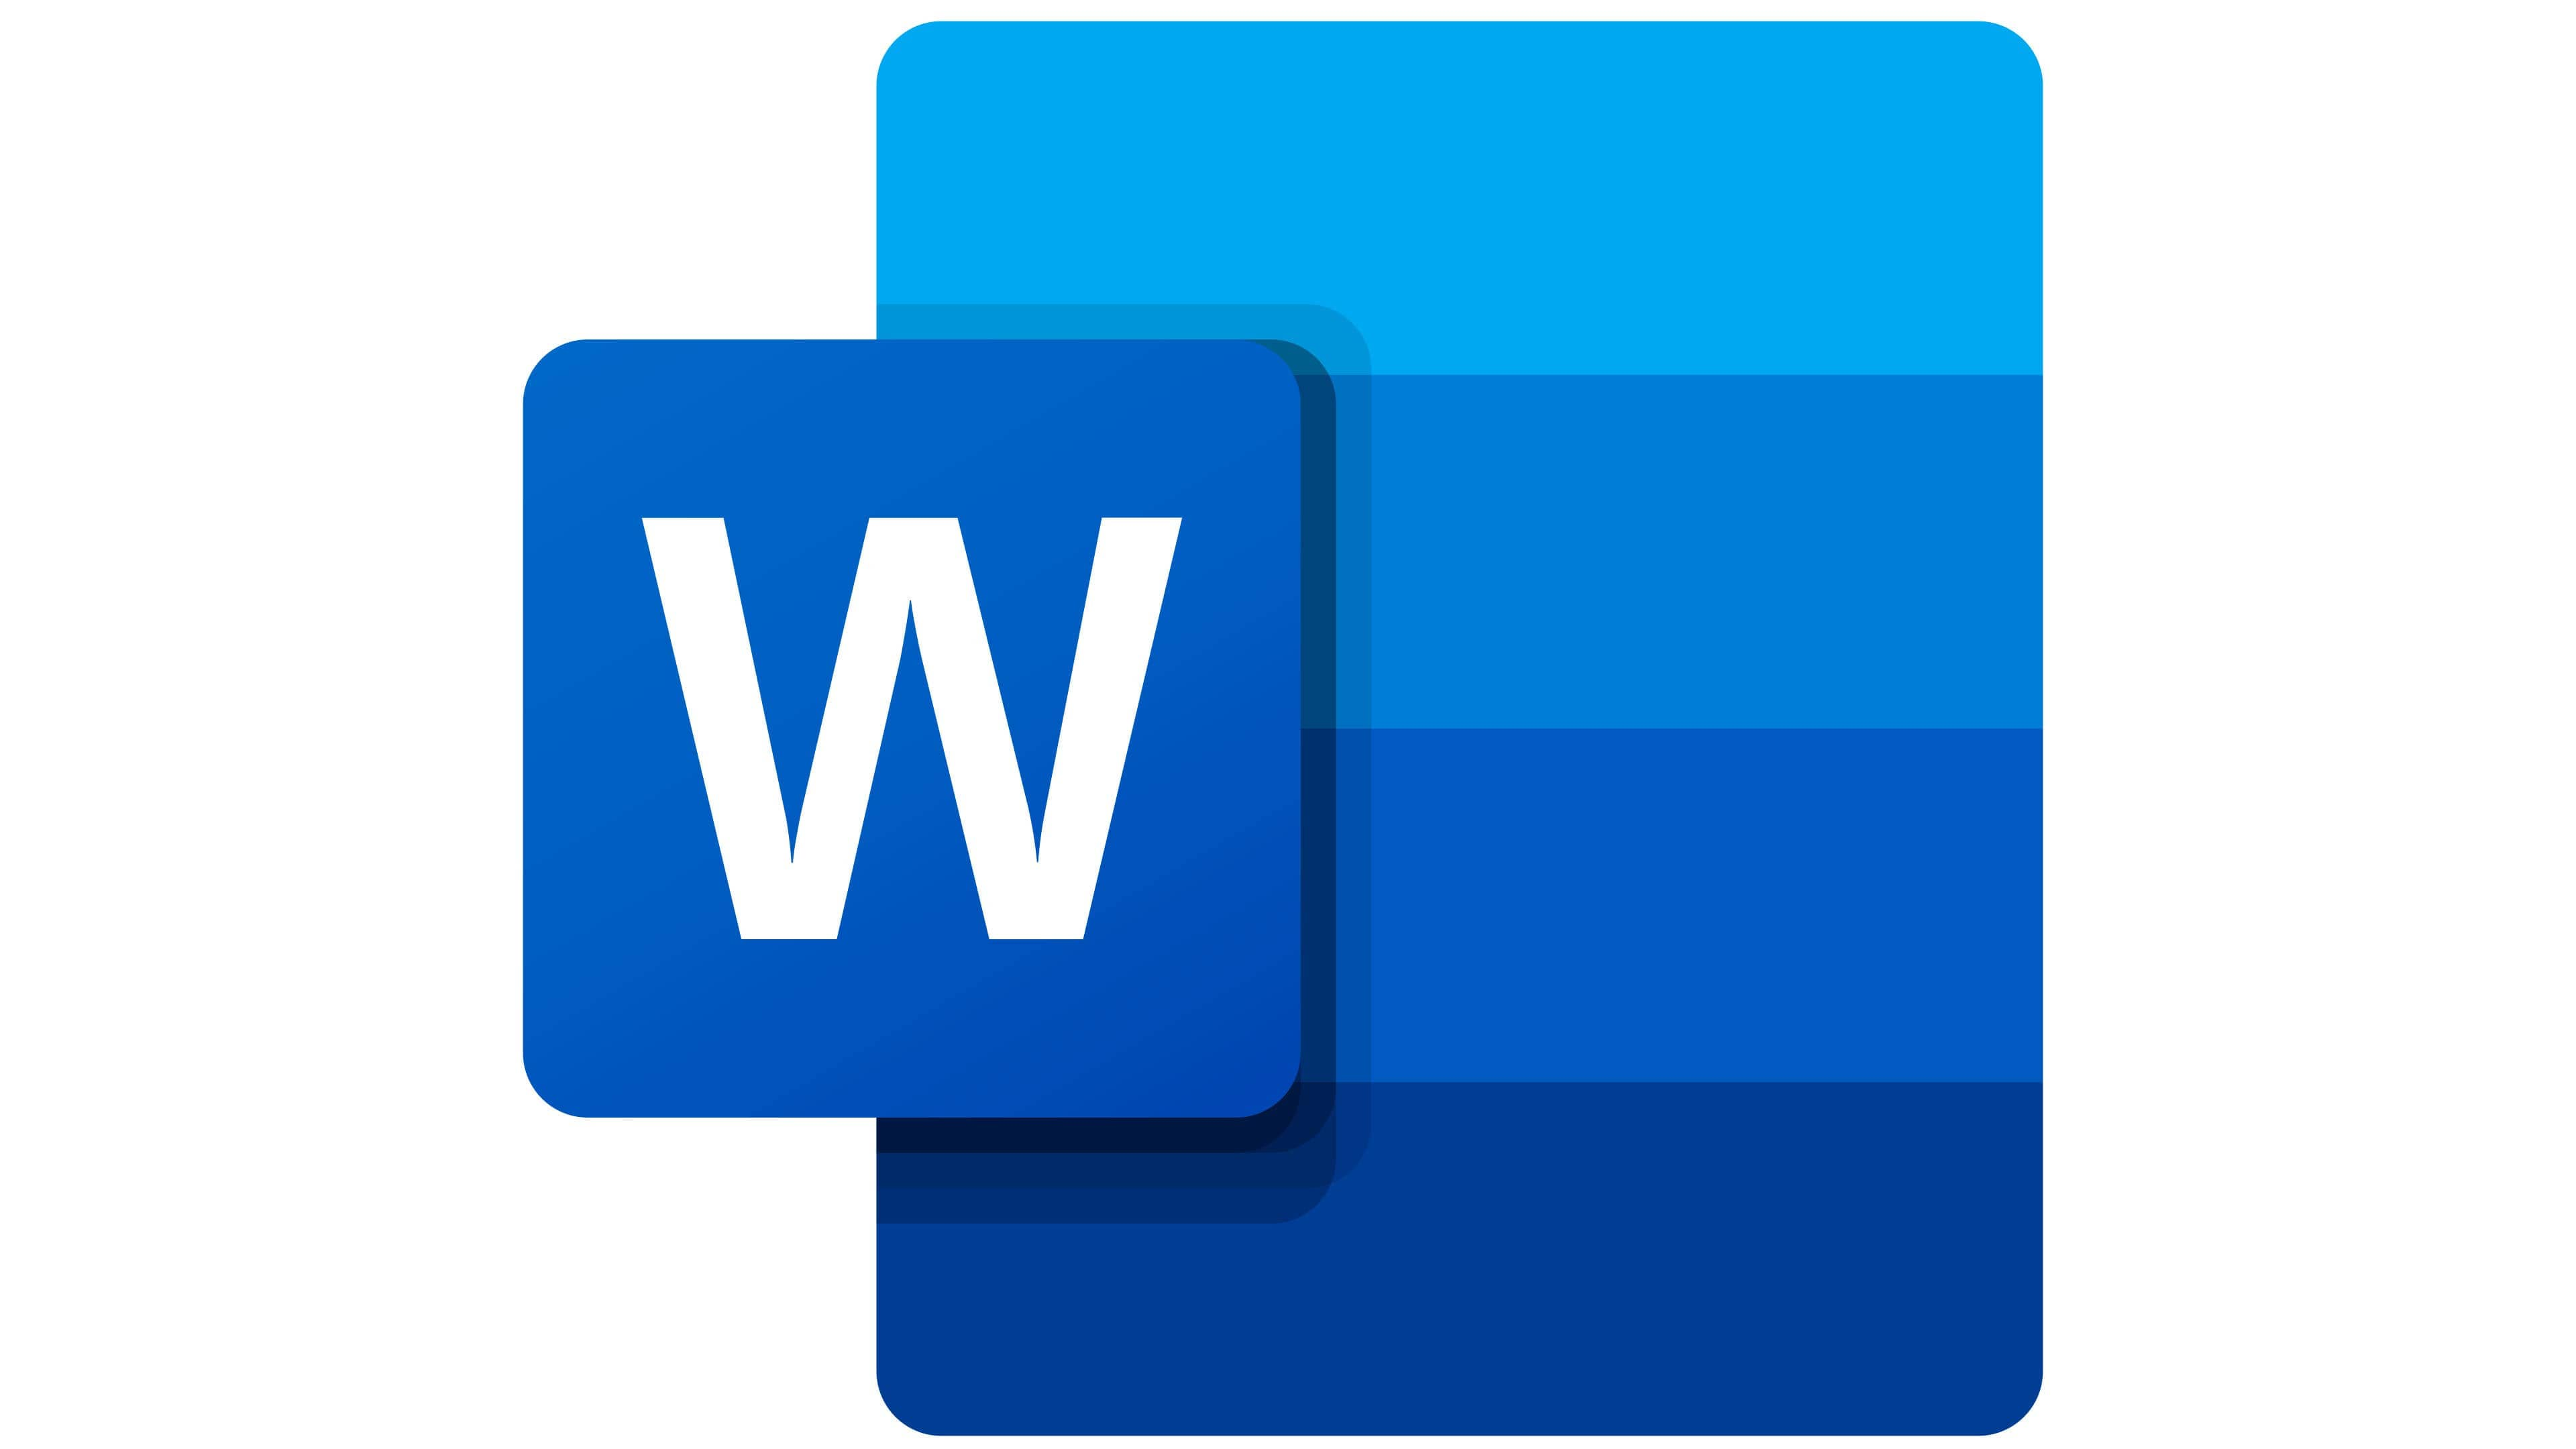 Microsoft Word Logo The Most Famous Brands And Company Logos In The World